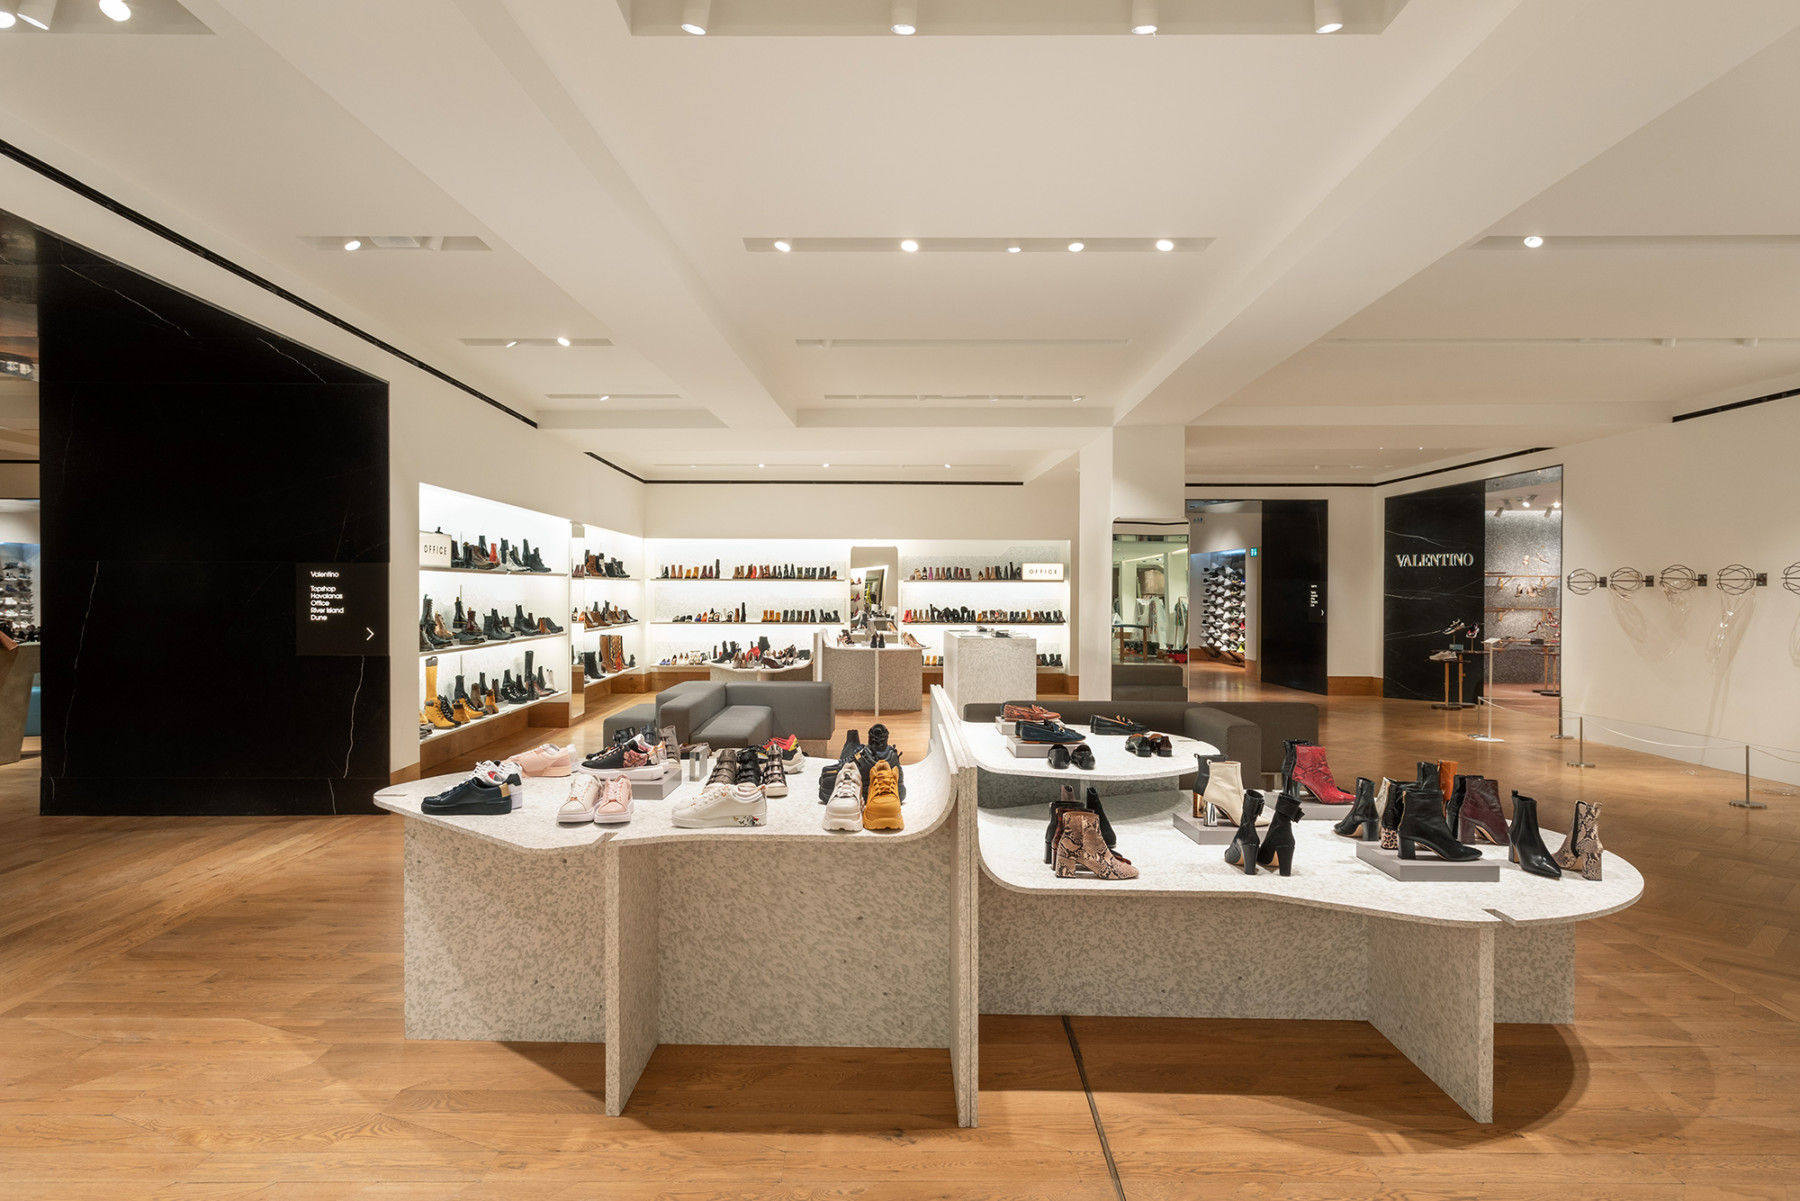 jamie-fobert-architects-selfridges-shoe-galleries-luxury-retail-concept-gallery-2-recycled-plastic